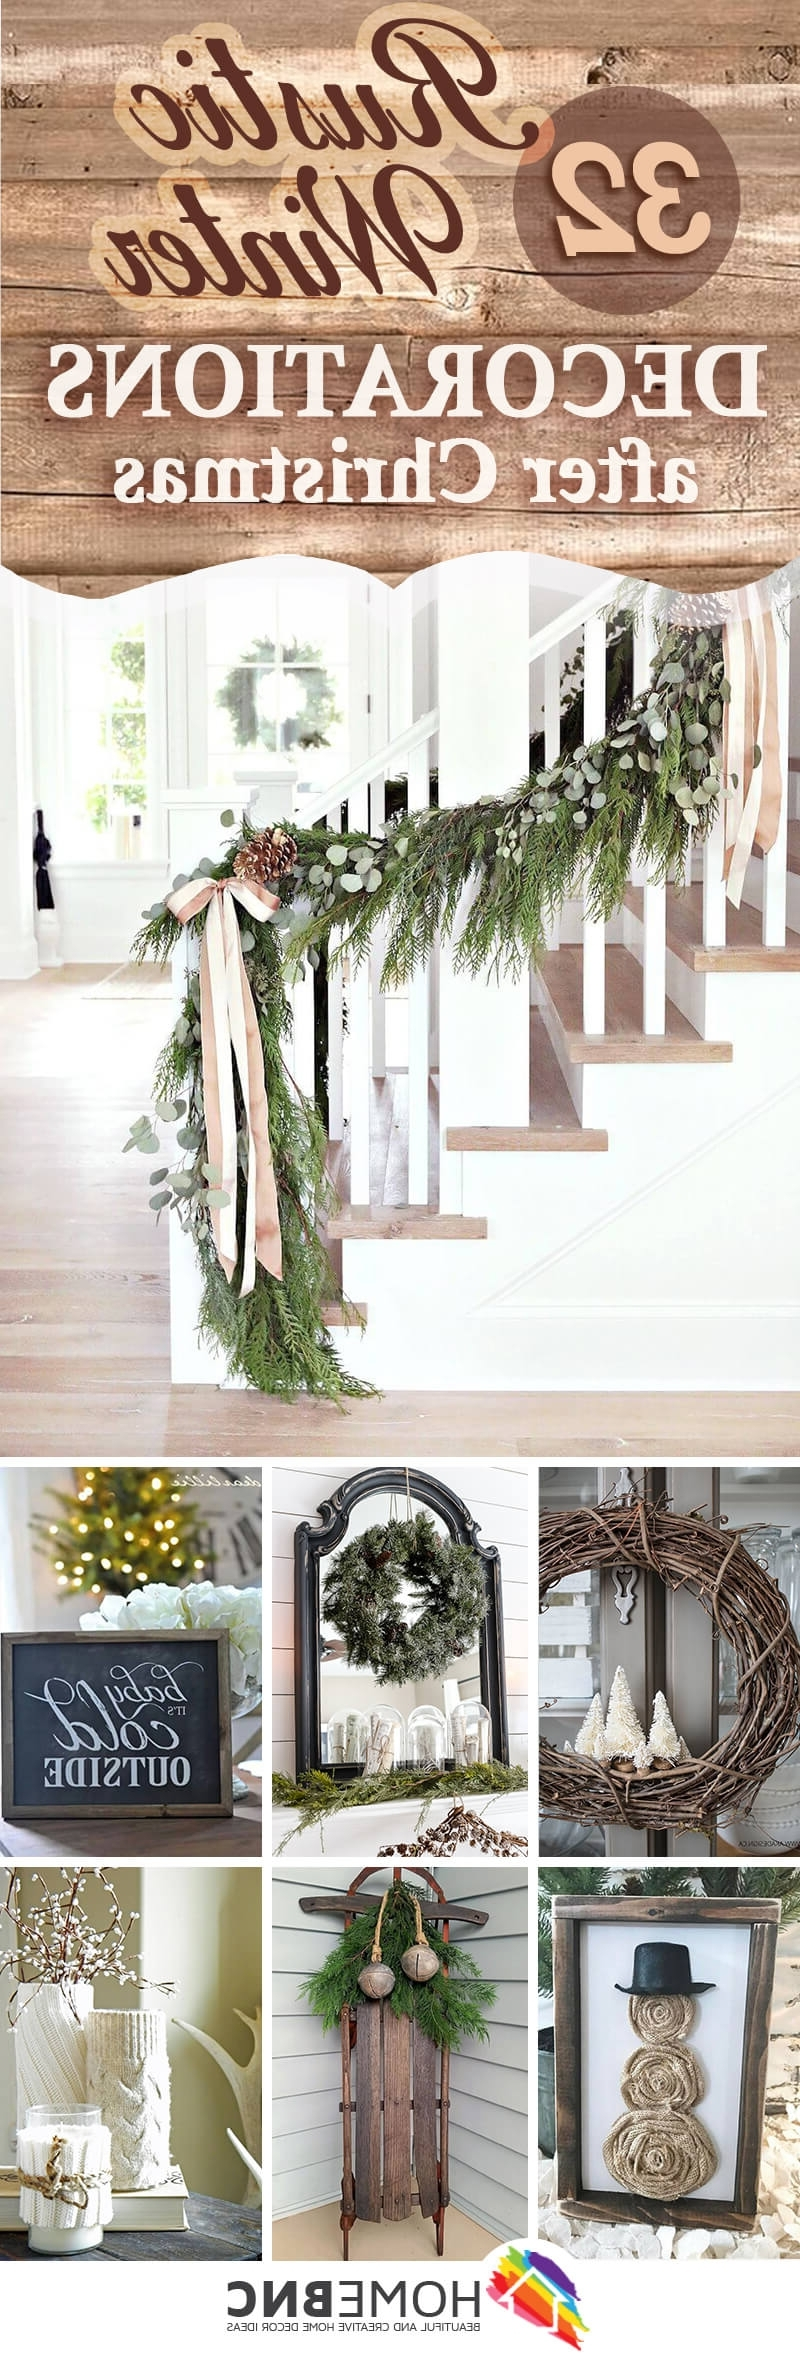 32 Best Rustic Winter Decor Ideas And Designs For 2020